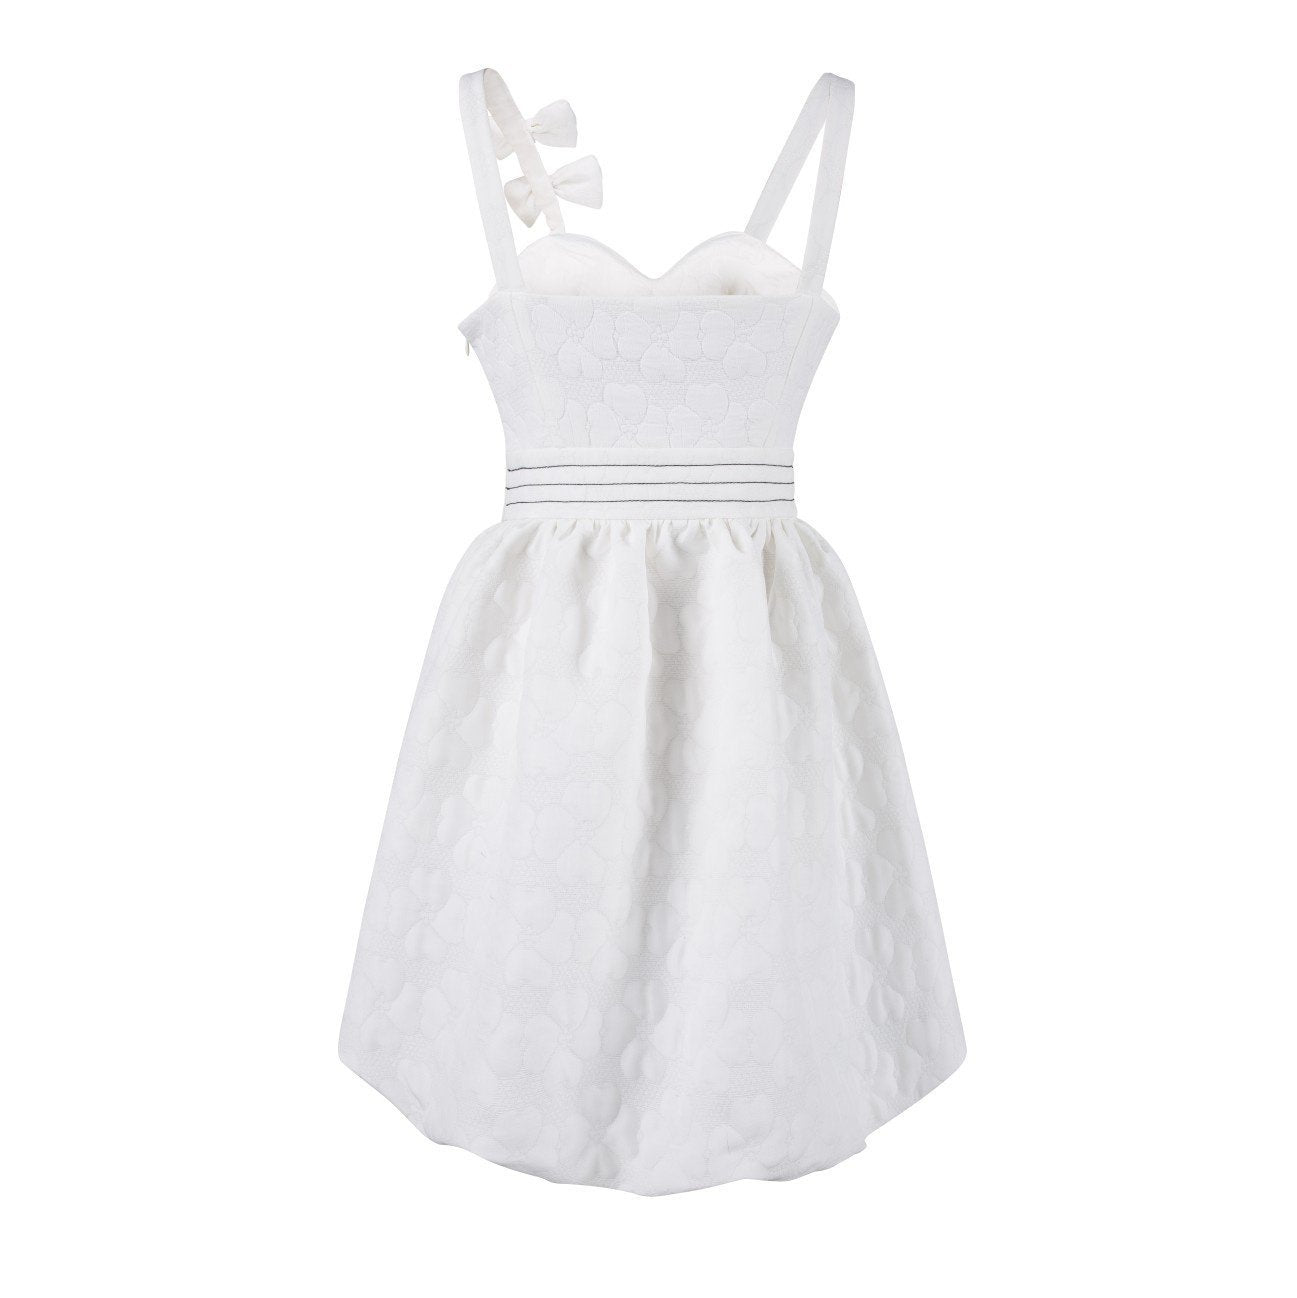 VIAS HERLIAN White Bowknot Slip Dress | MADA IN CHINA